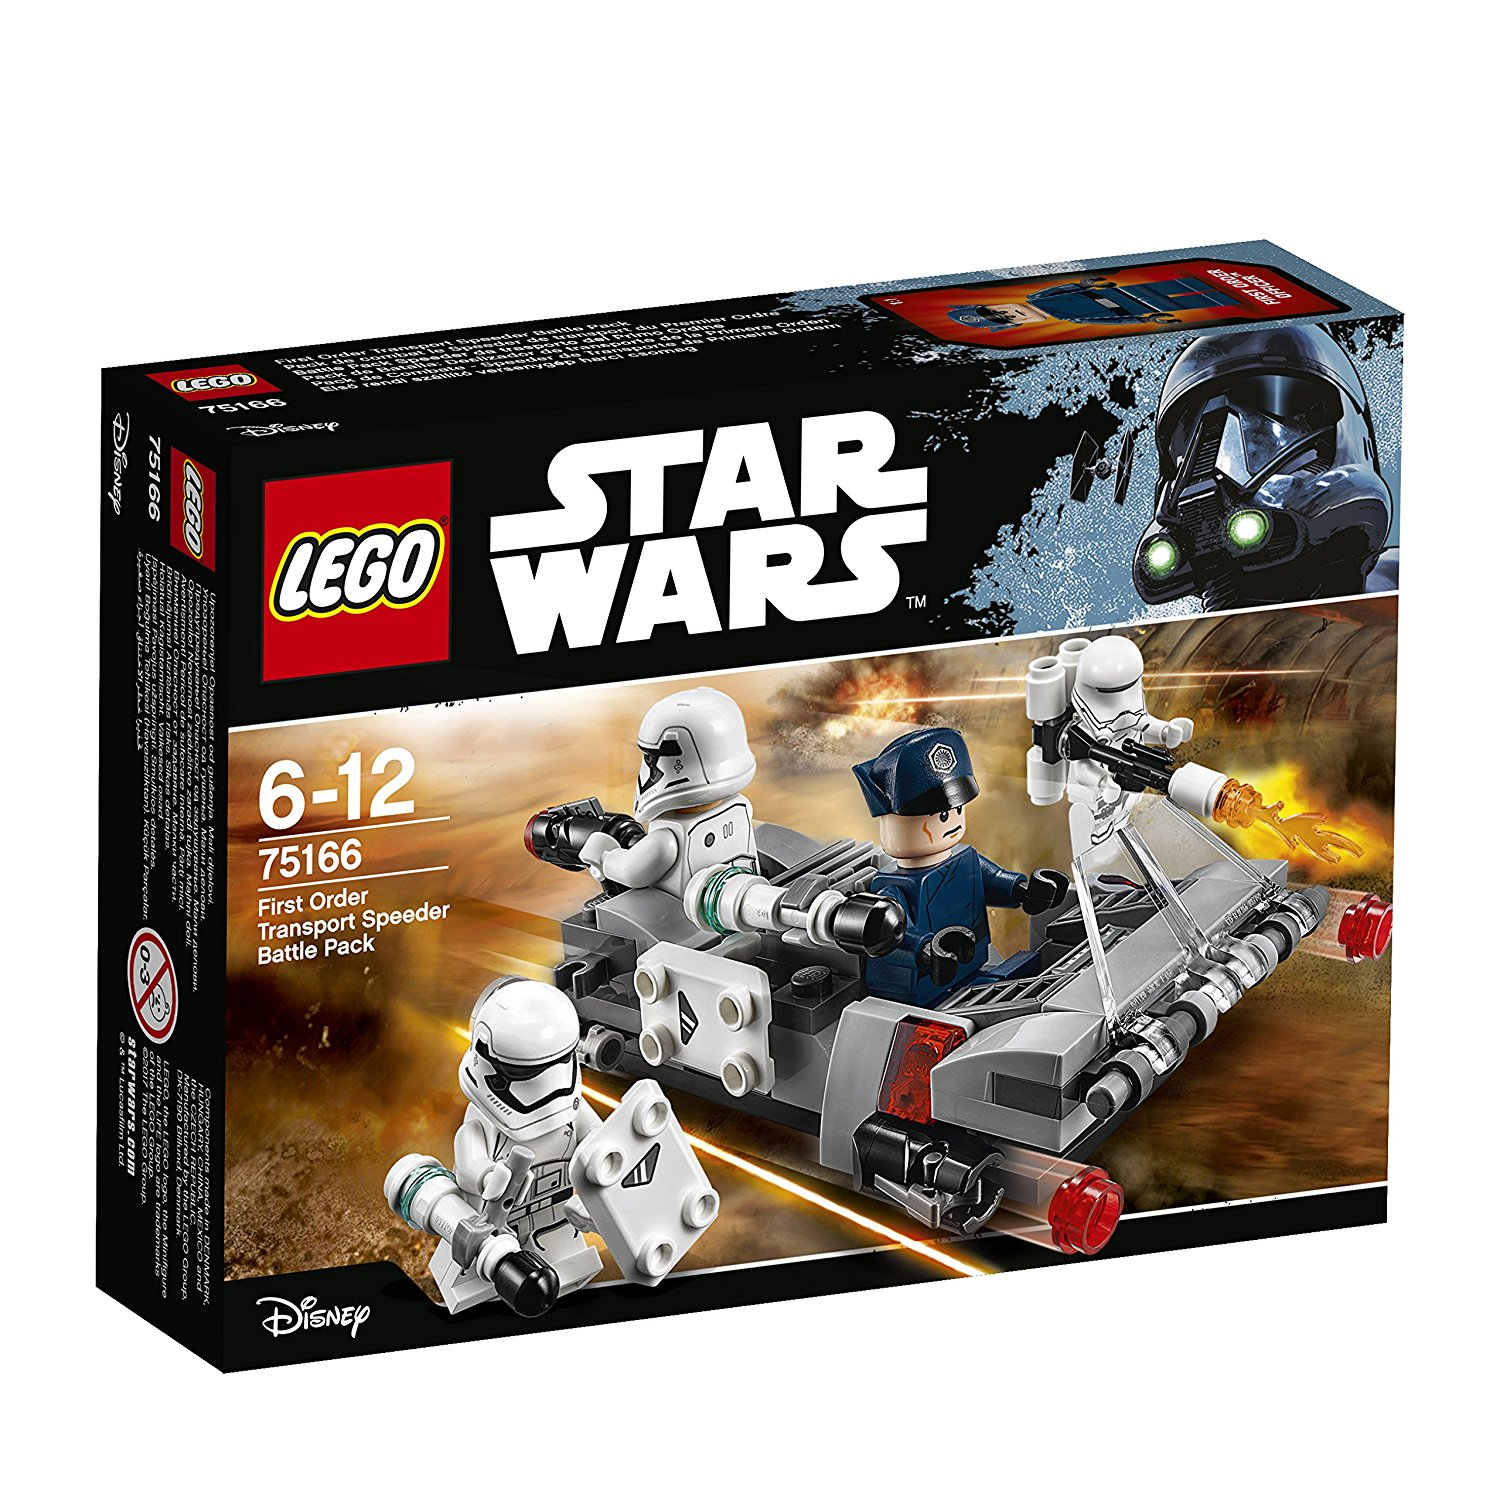 LEGO Star Wars 75166 - First Order Transport Speeder Battle Pack